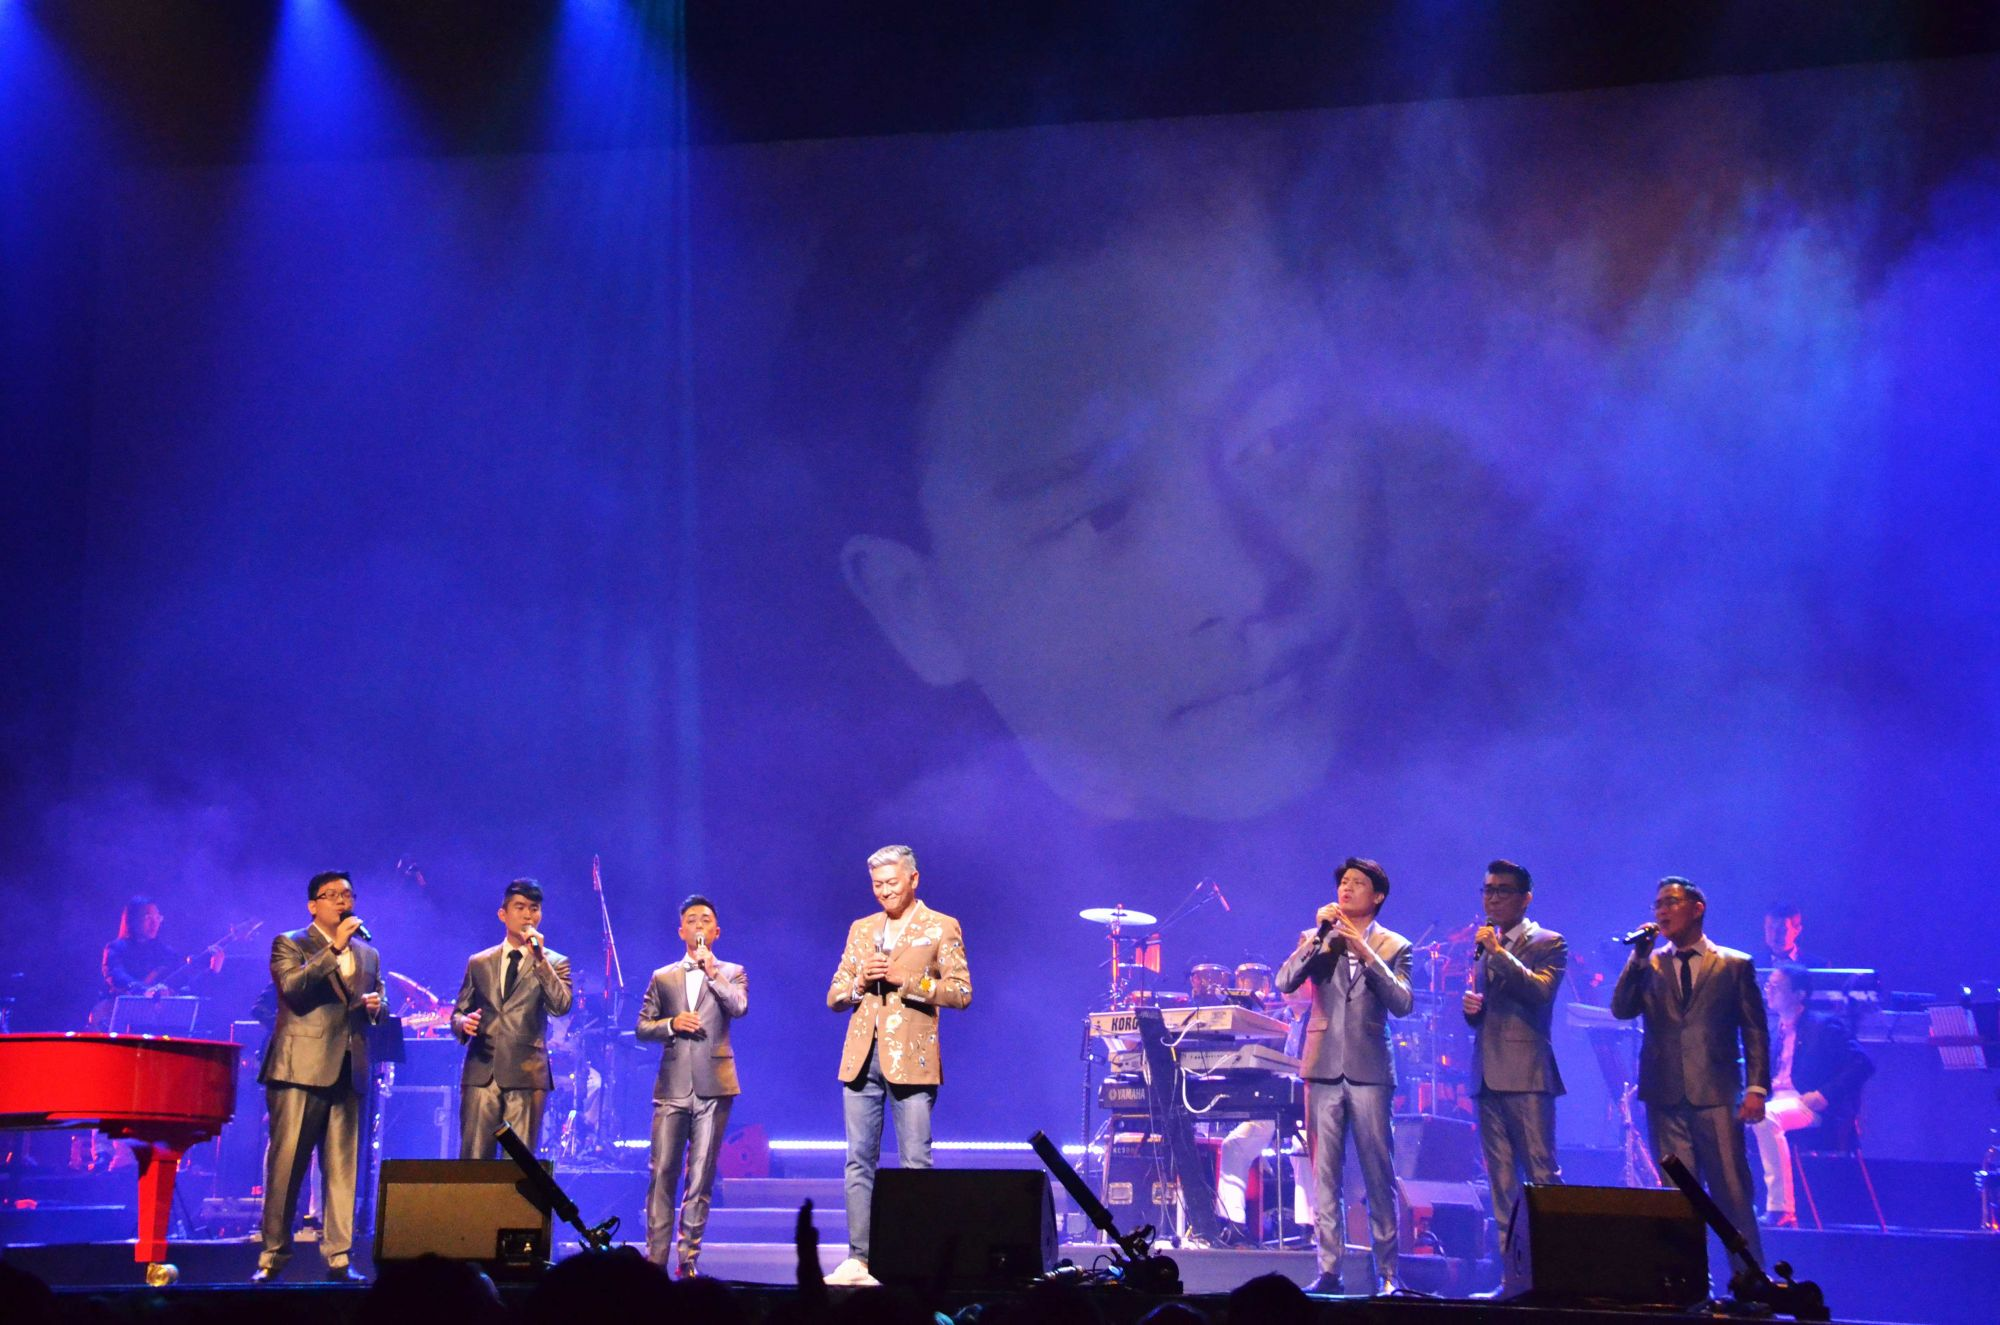 Dick Lee, a capella group After Six